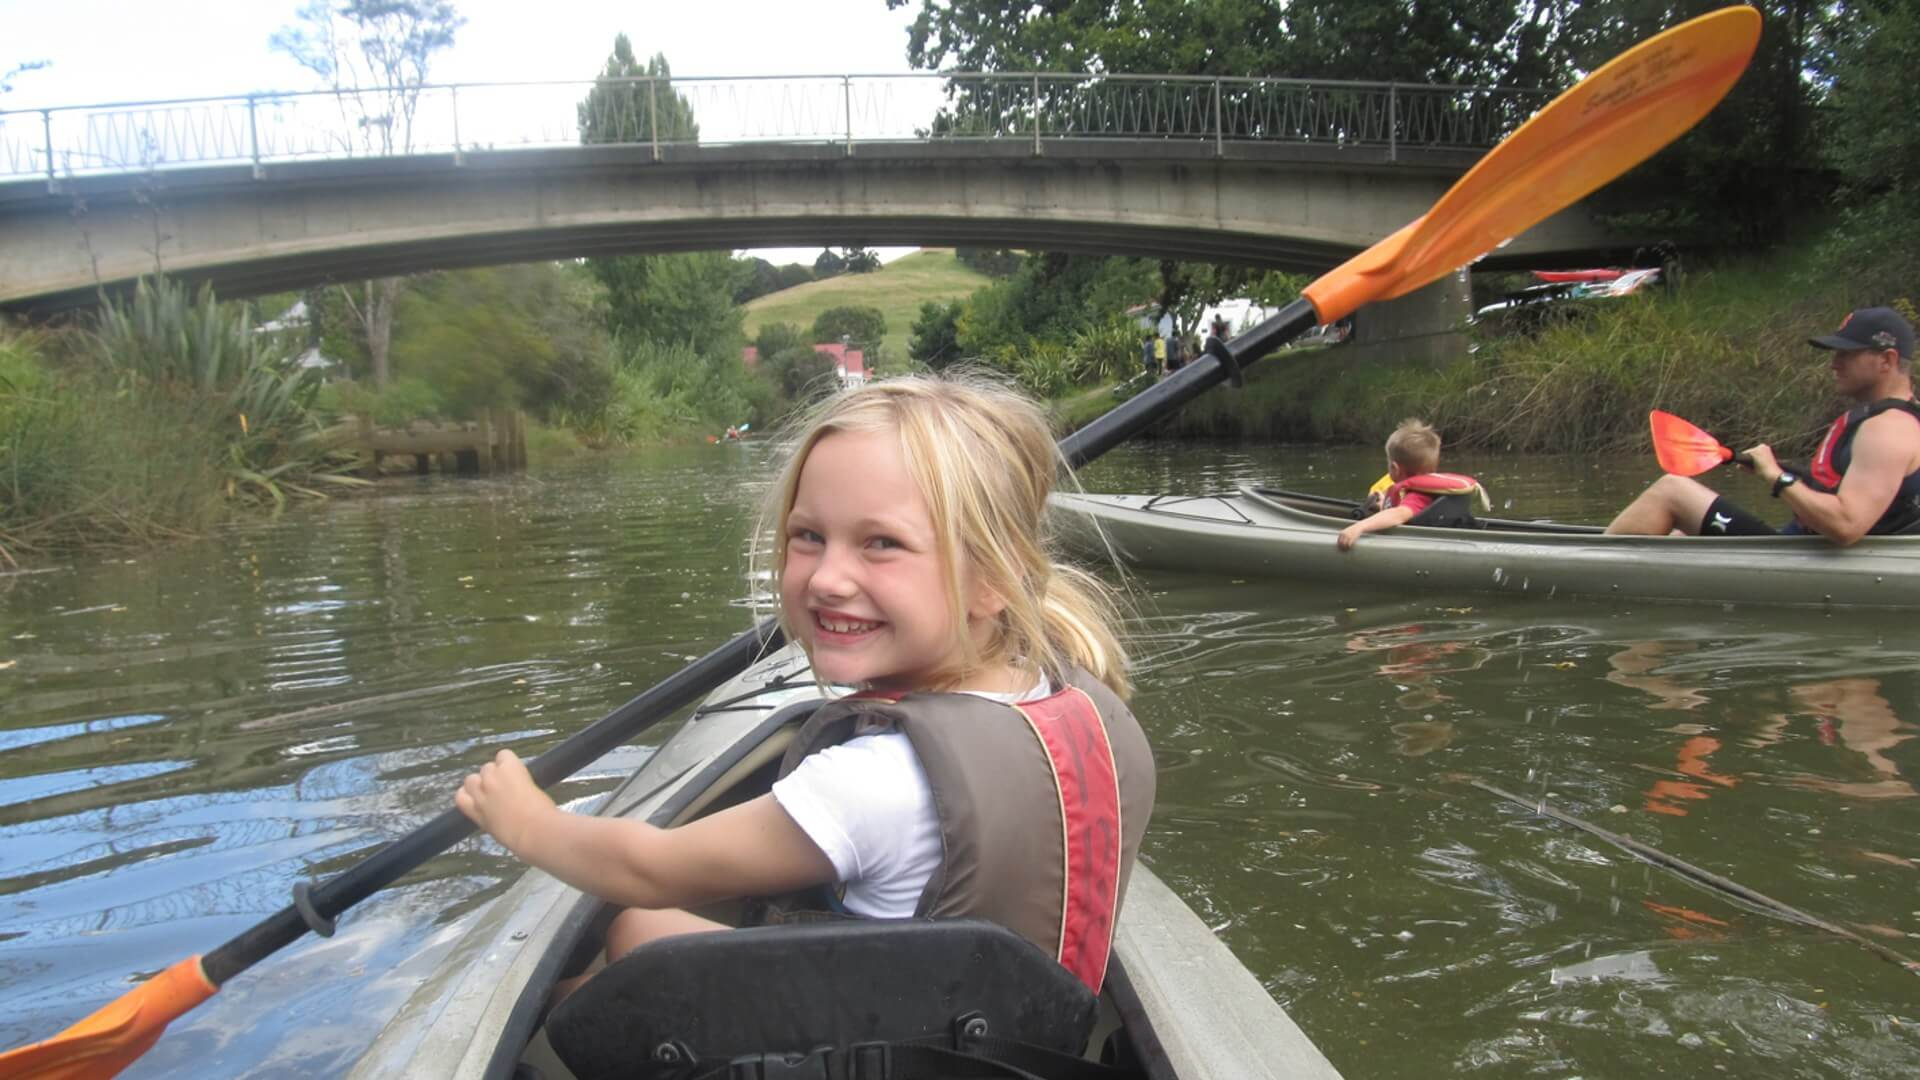 Puhoi River Kayak - Top 10 things to do with kids